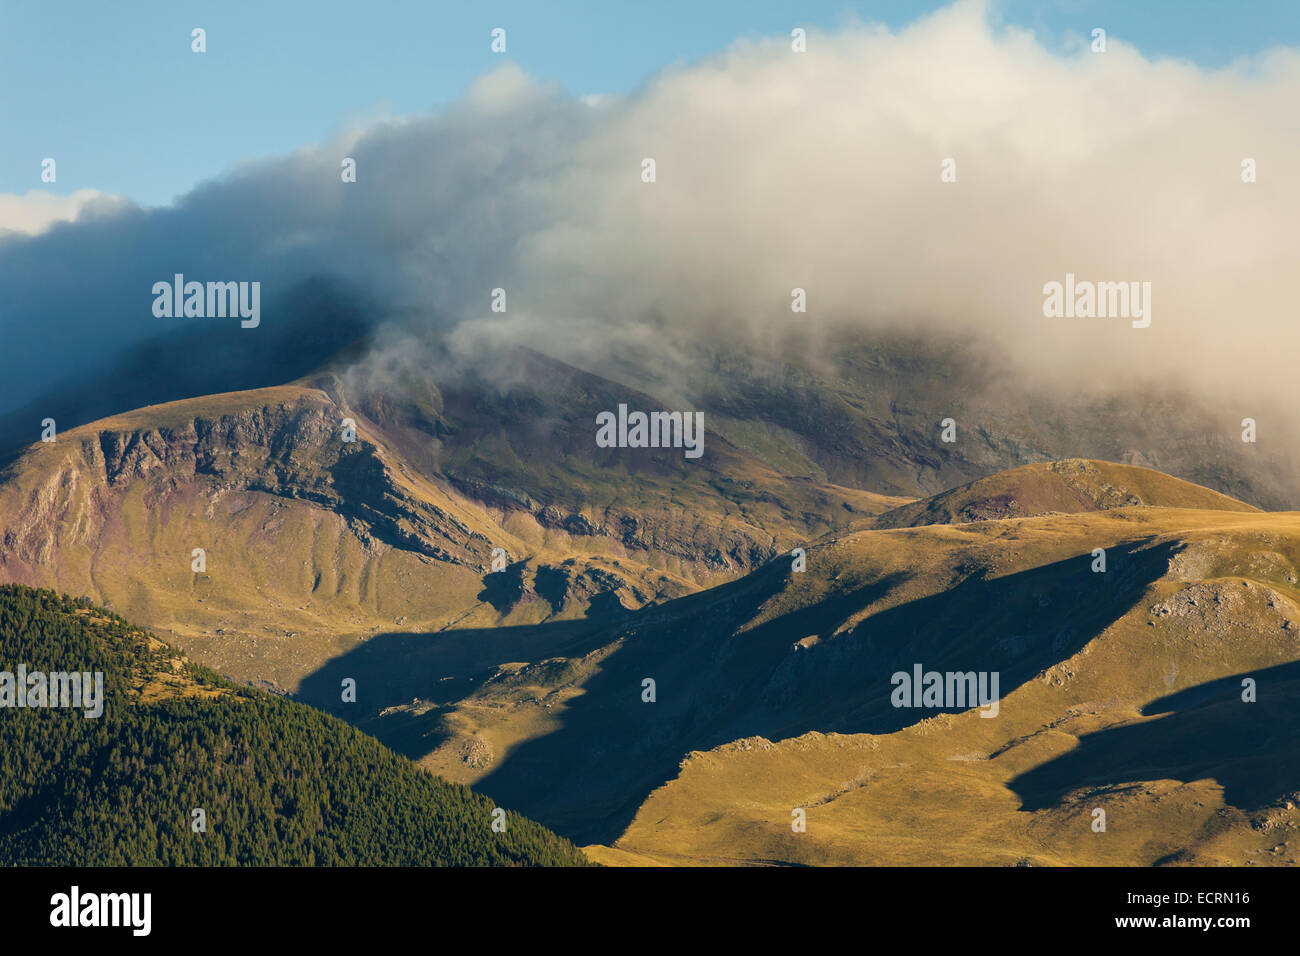 Morning in the Pyrenees mountains near the village of Gistaín, Spain. Stock Photo